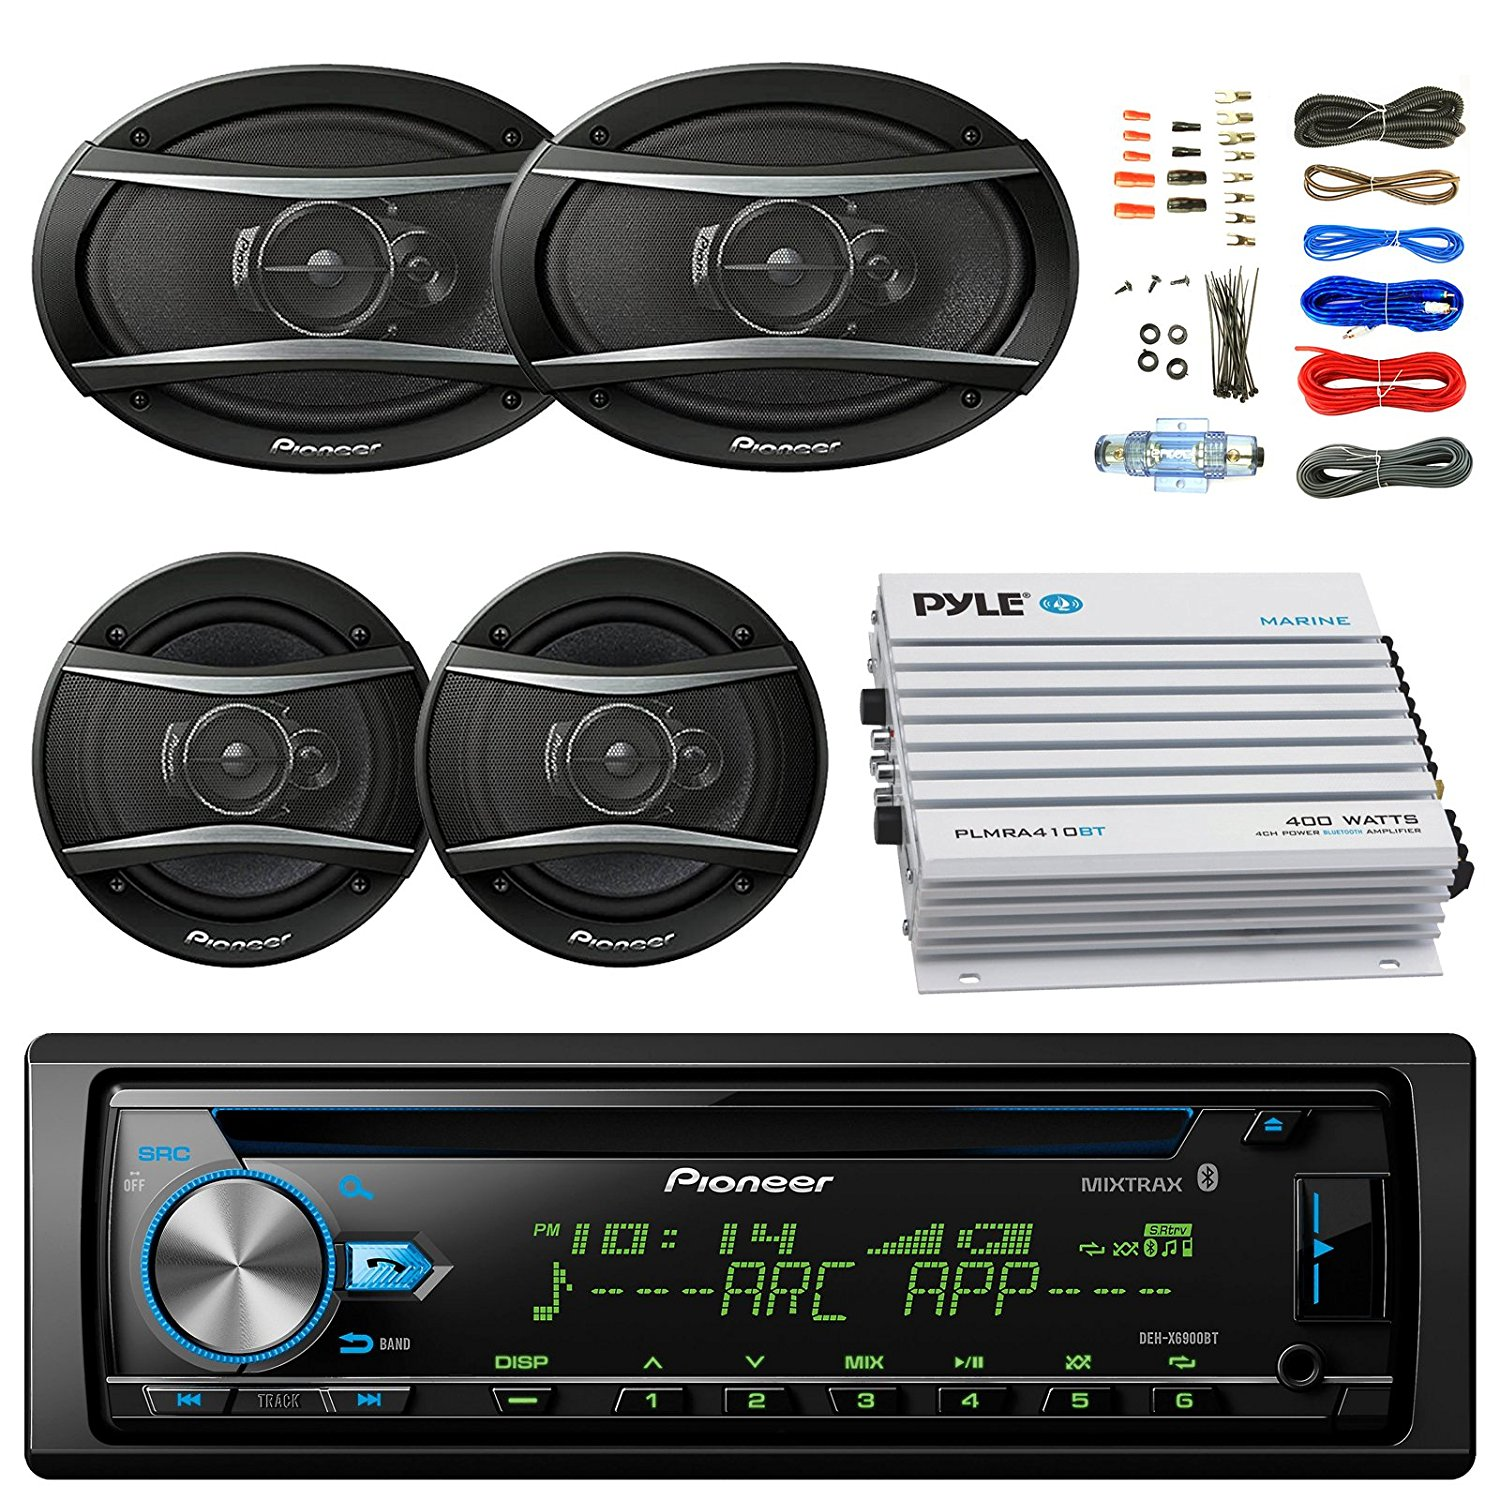 """Pioneer DEH-X6900BT Car Bluetooth Radio USB AUX CD Player Receiver - Bundle With 2x TSA1676R 6.5"""" 3-Way Car Audio Speakers - 2x 6.5""""-6.75"""" 4-Way Stereo Speaker + 4-Channel Amplifier + Amp Kit"""